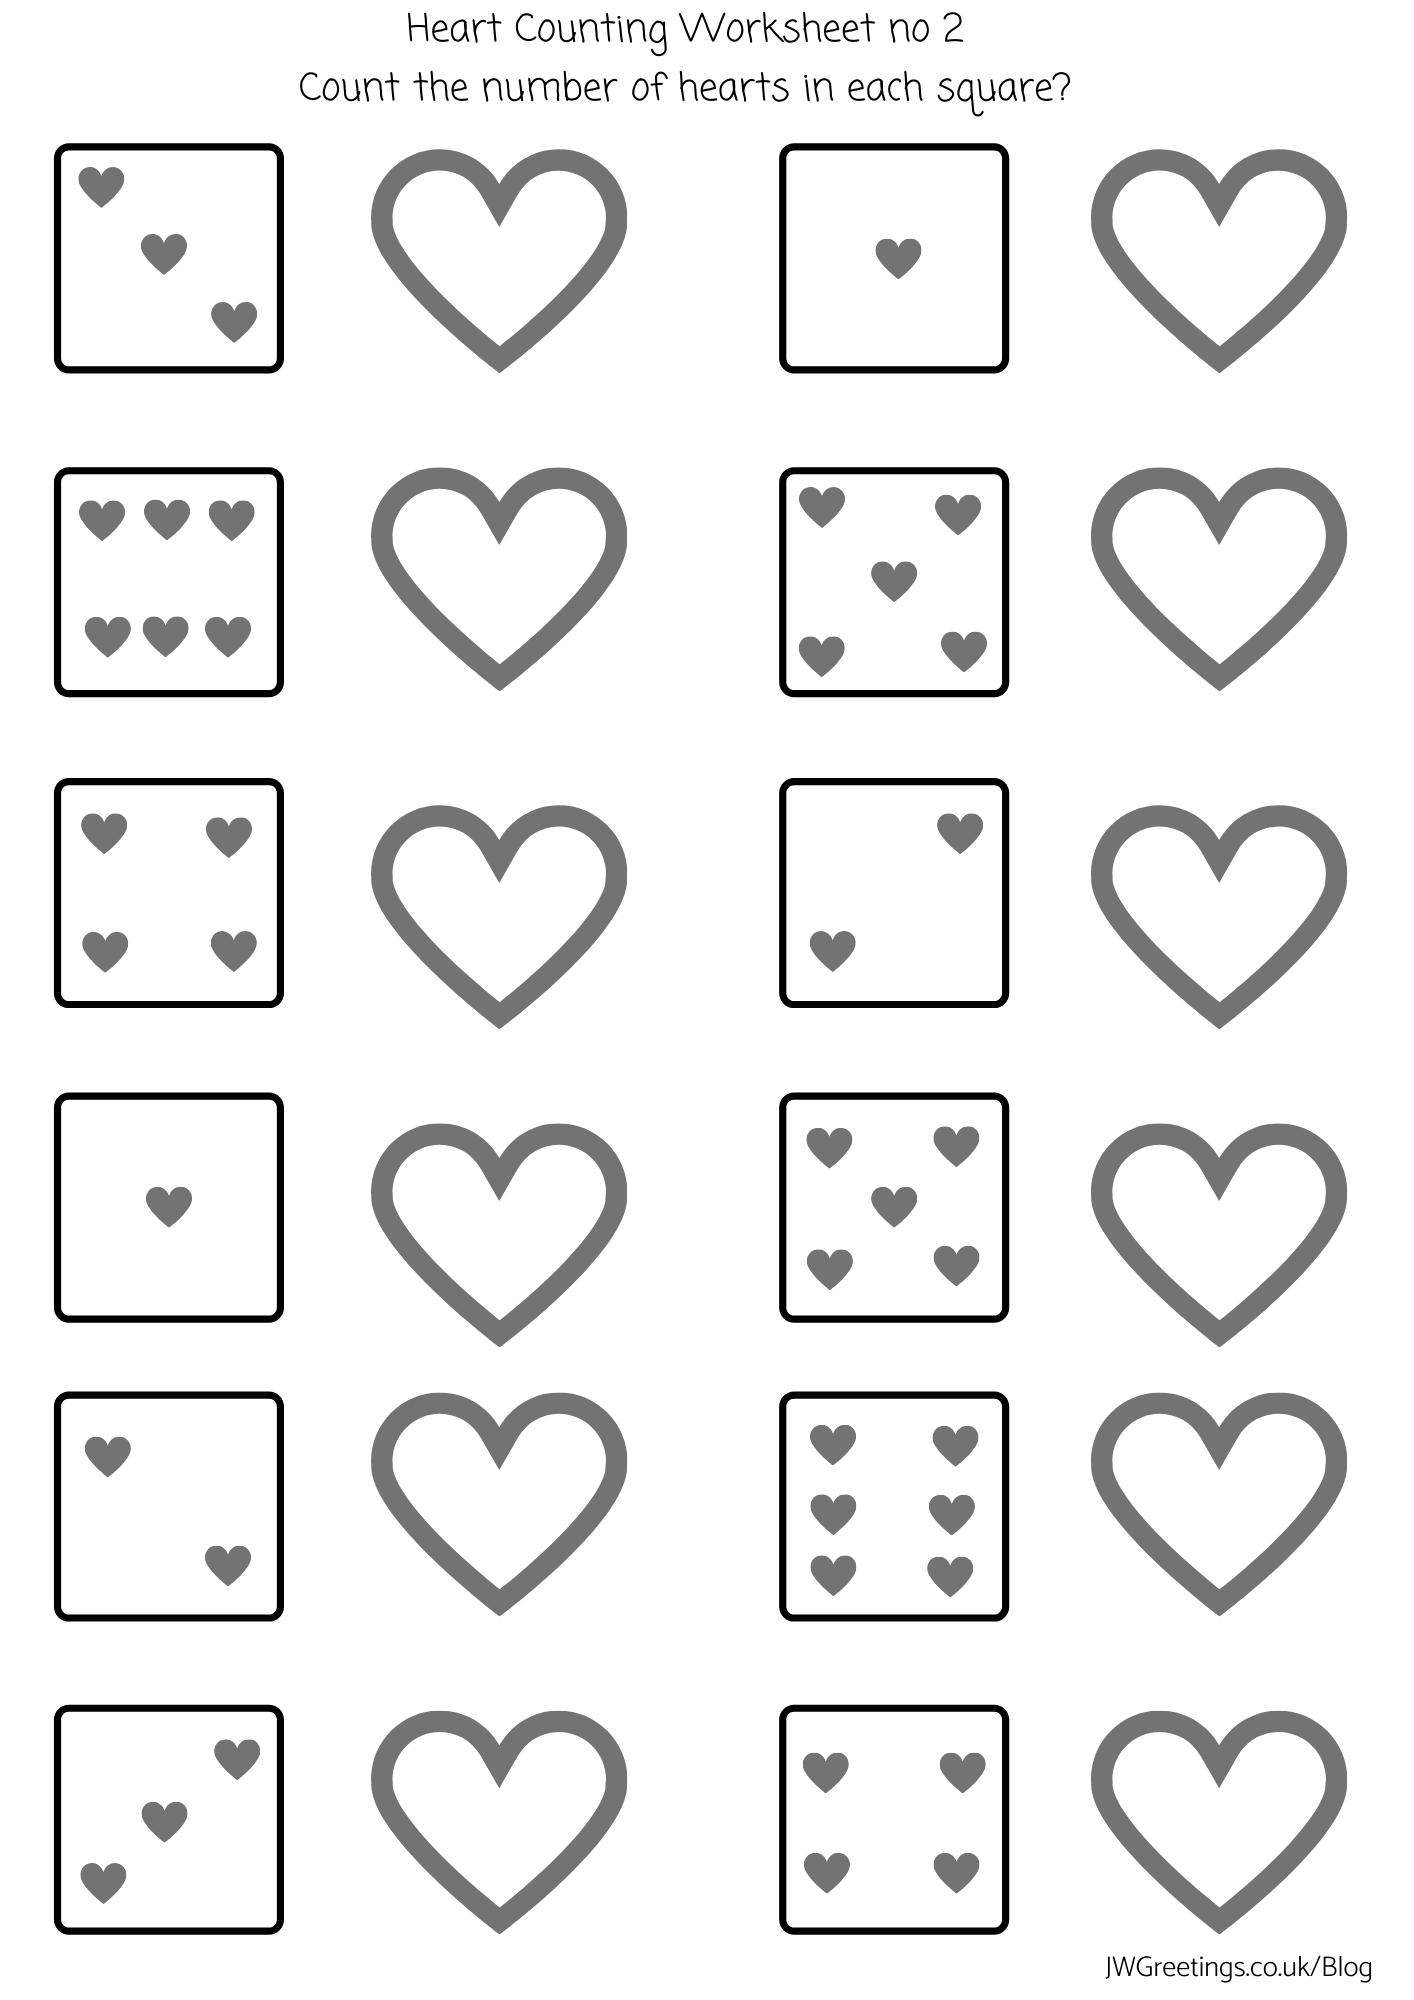 Hearts Counting Worksheet Preschool No 2 In